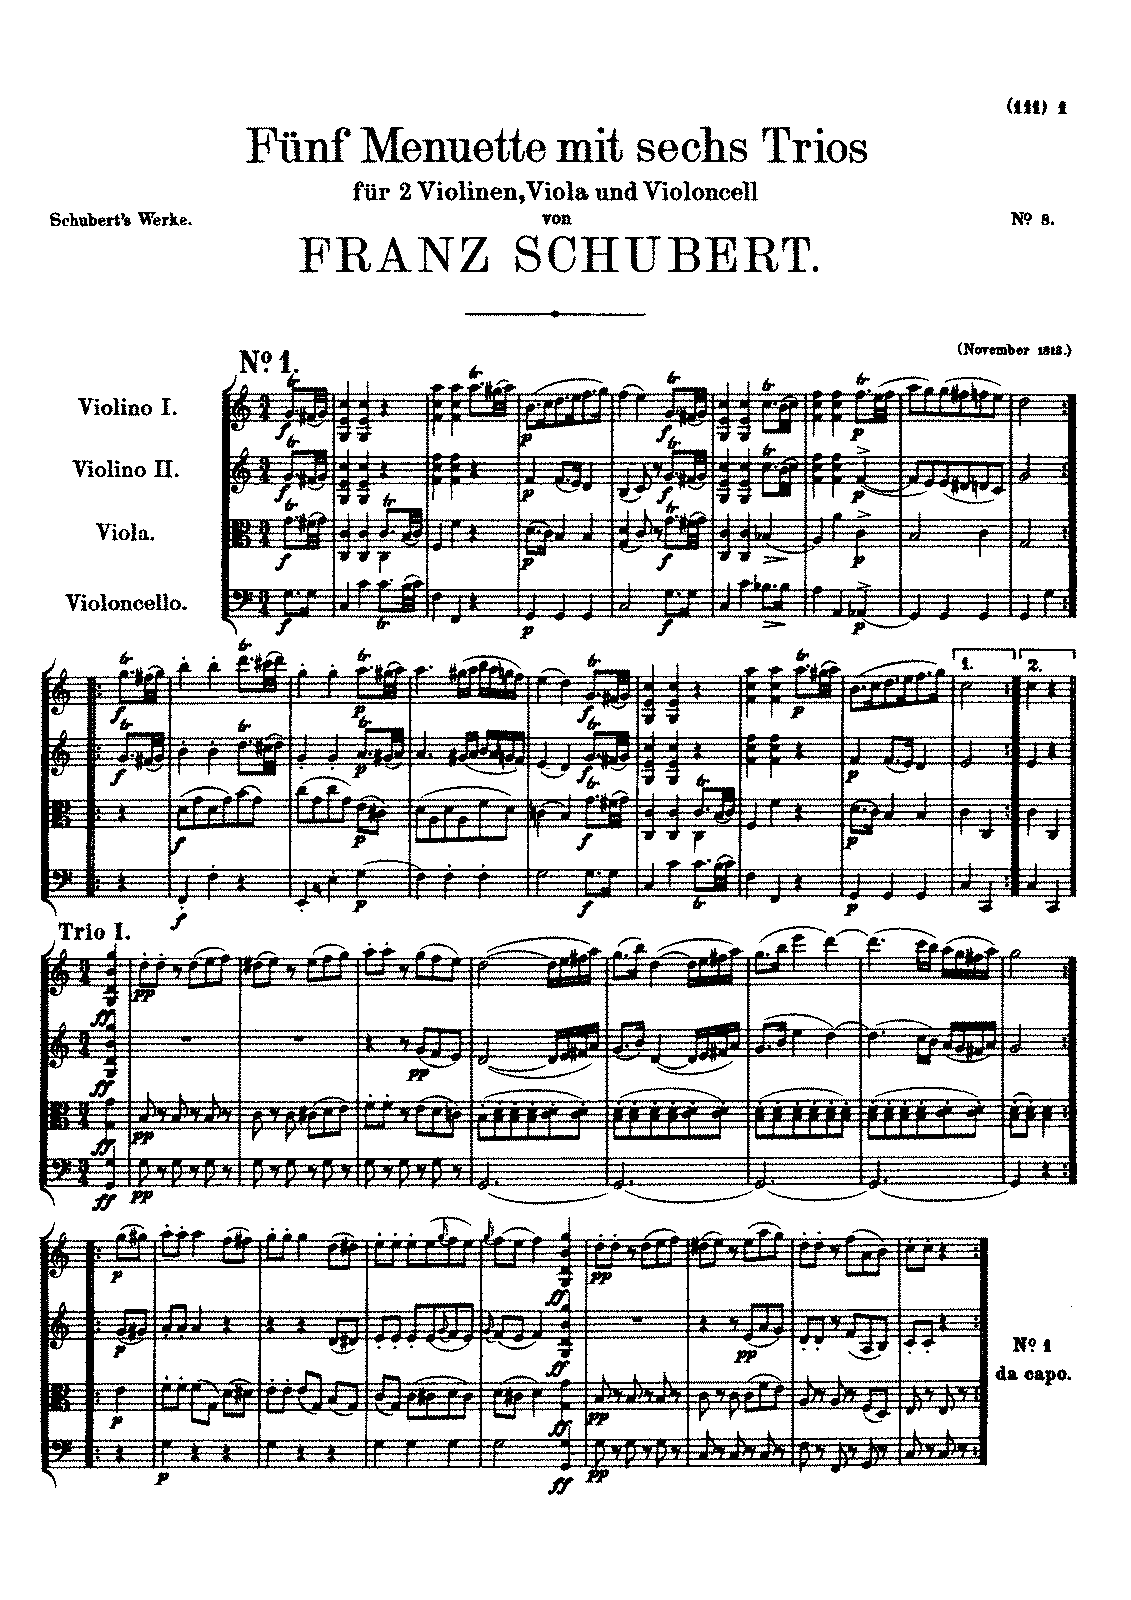 SchubertD089 5 Minuets with 6 Trios for String Quartet.pdf